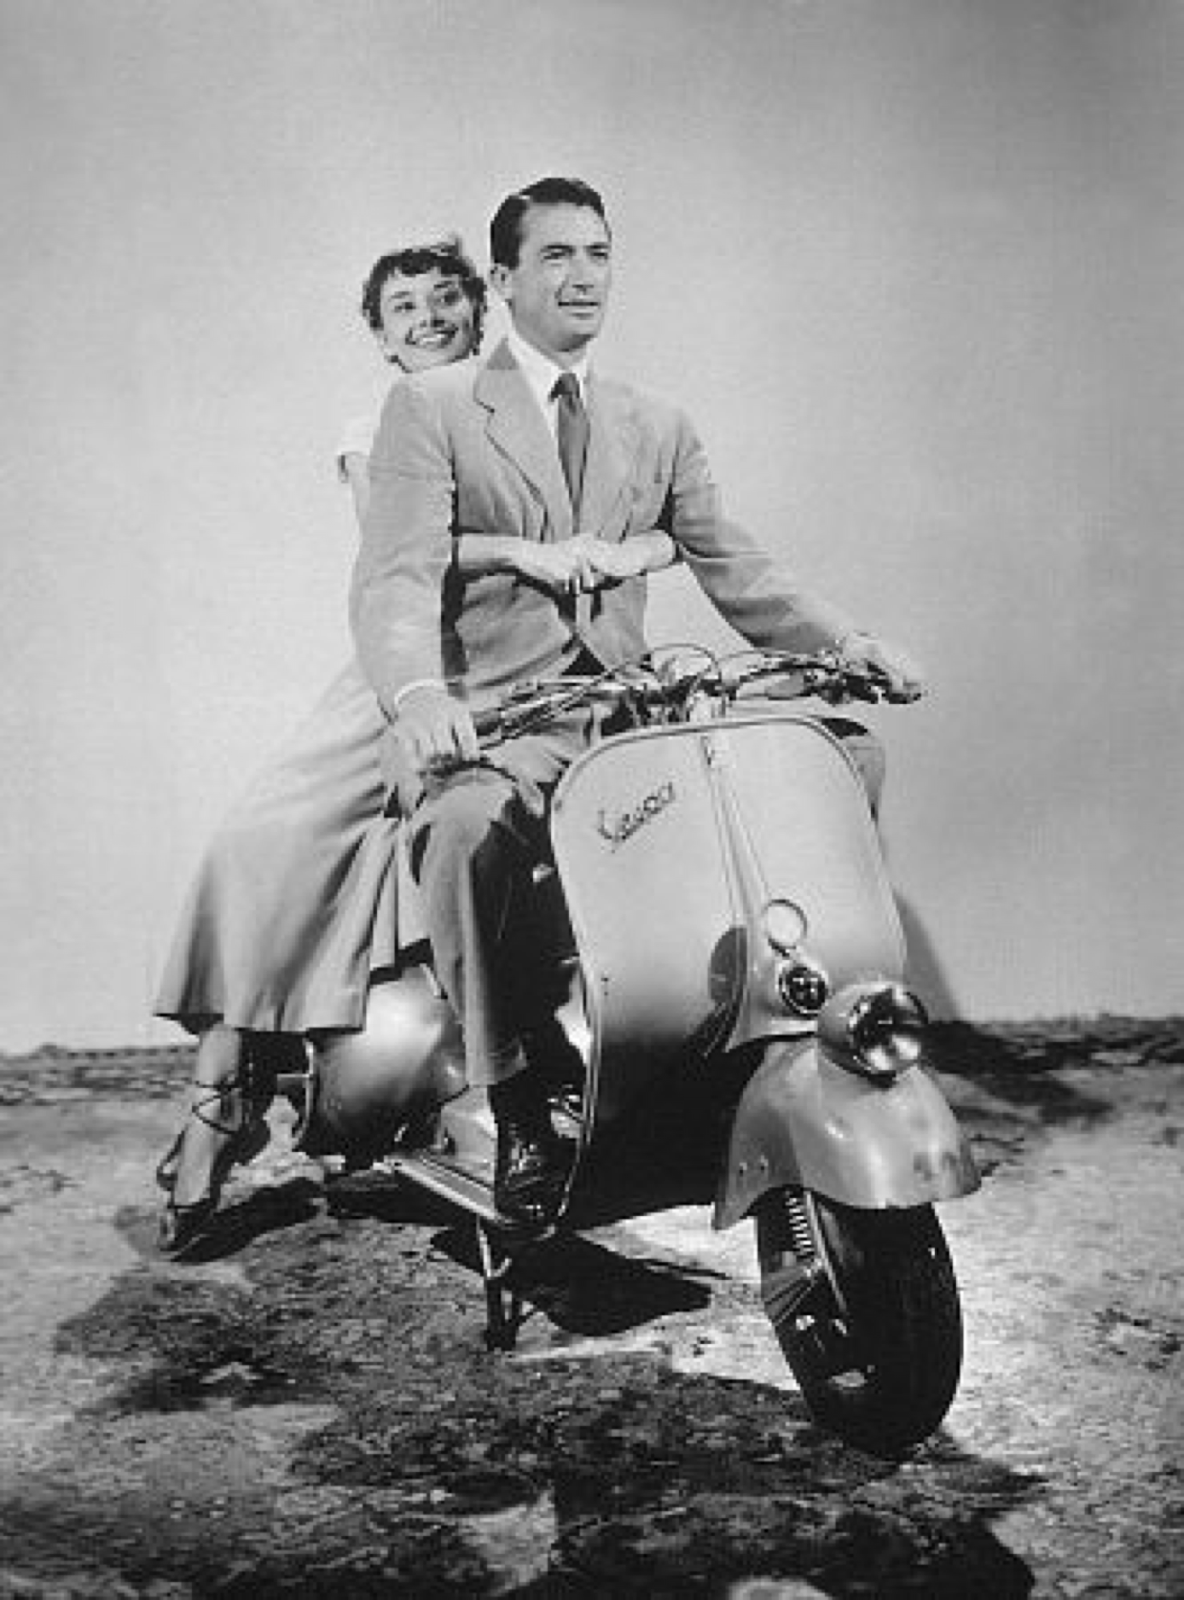 A brief moment when Ann (Hepburn) and Joe (Peck) use this scooter to explore around the city. It must be nice to roam, well… Rome! (Photo taken from IMDB)